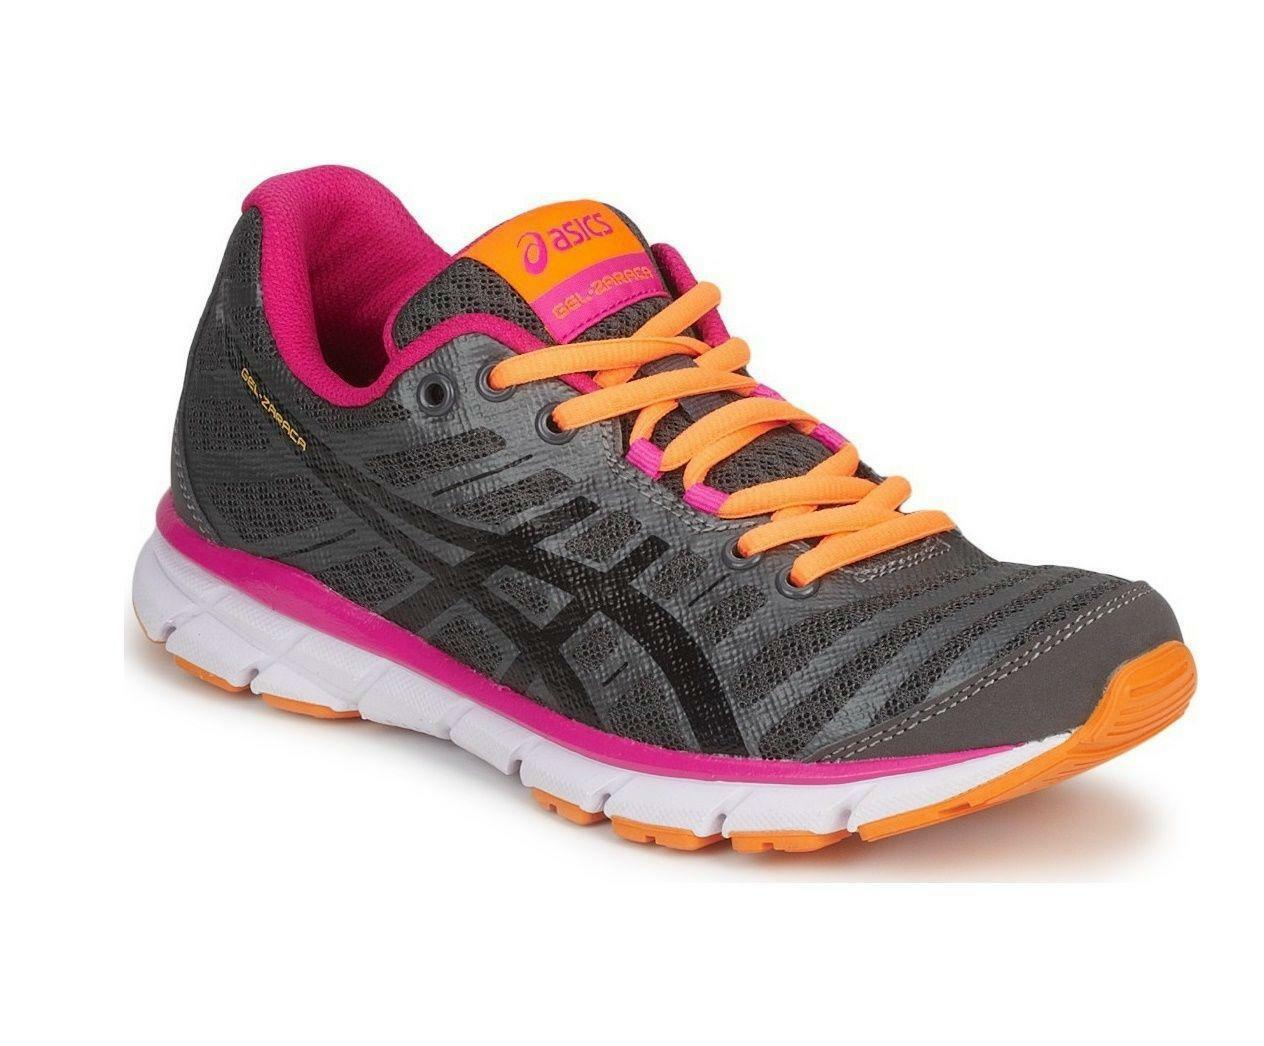 Womens ASICS GEL ZARACA 2 Grey Pink Running Trainers T3A9N 7390 Cheap and beautiful fashion